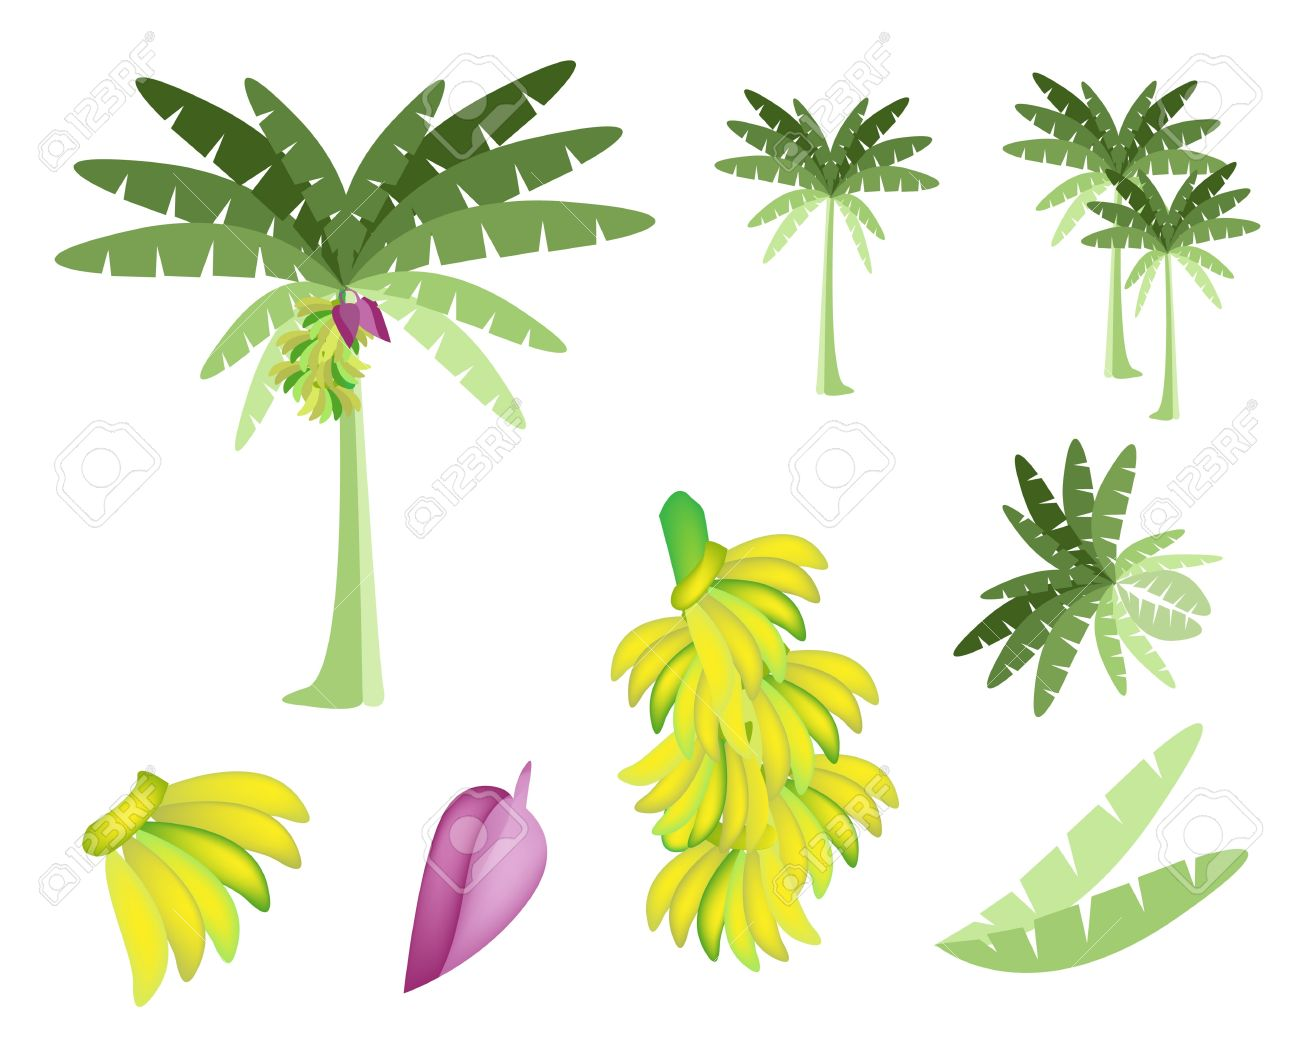 Banana Tree Leaf Clip Art.